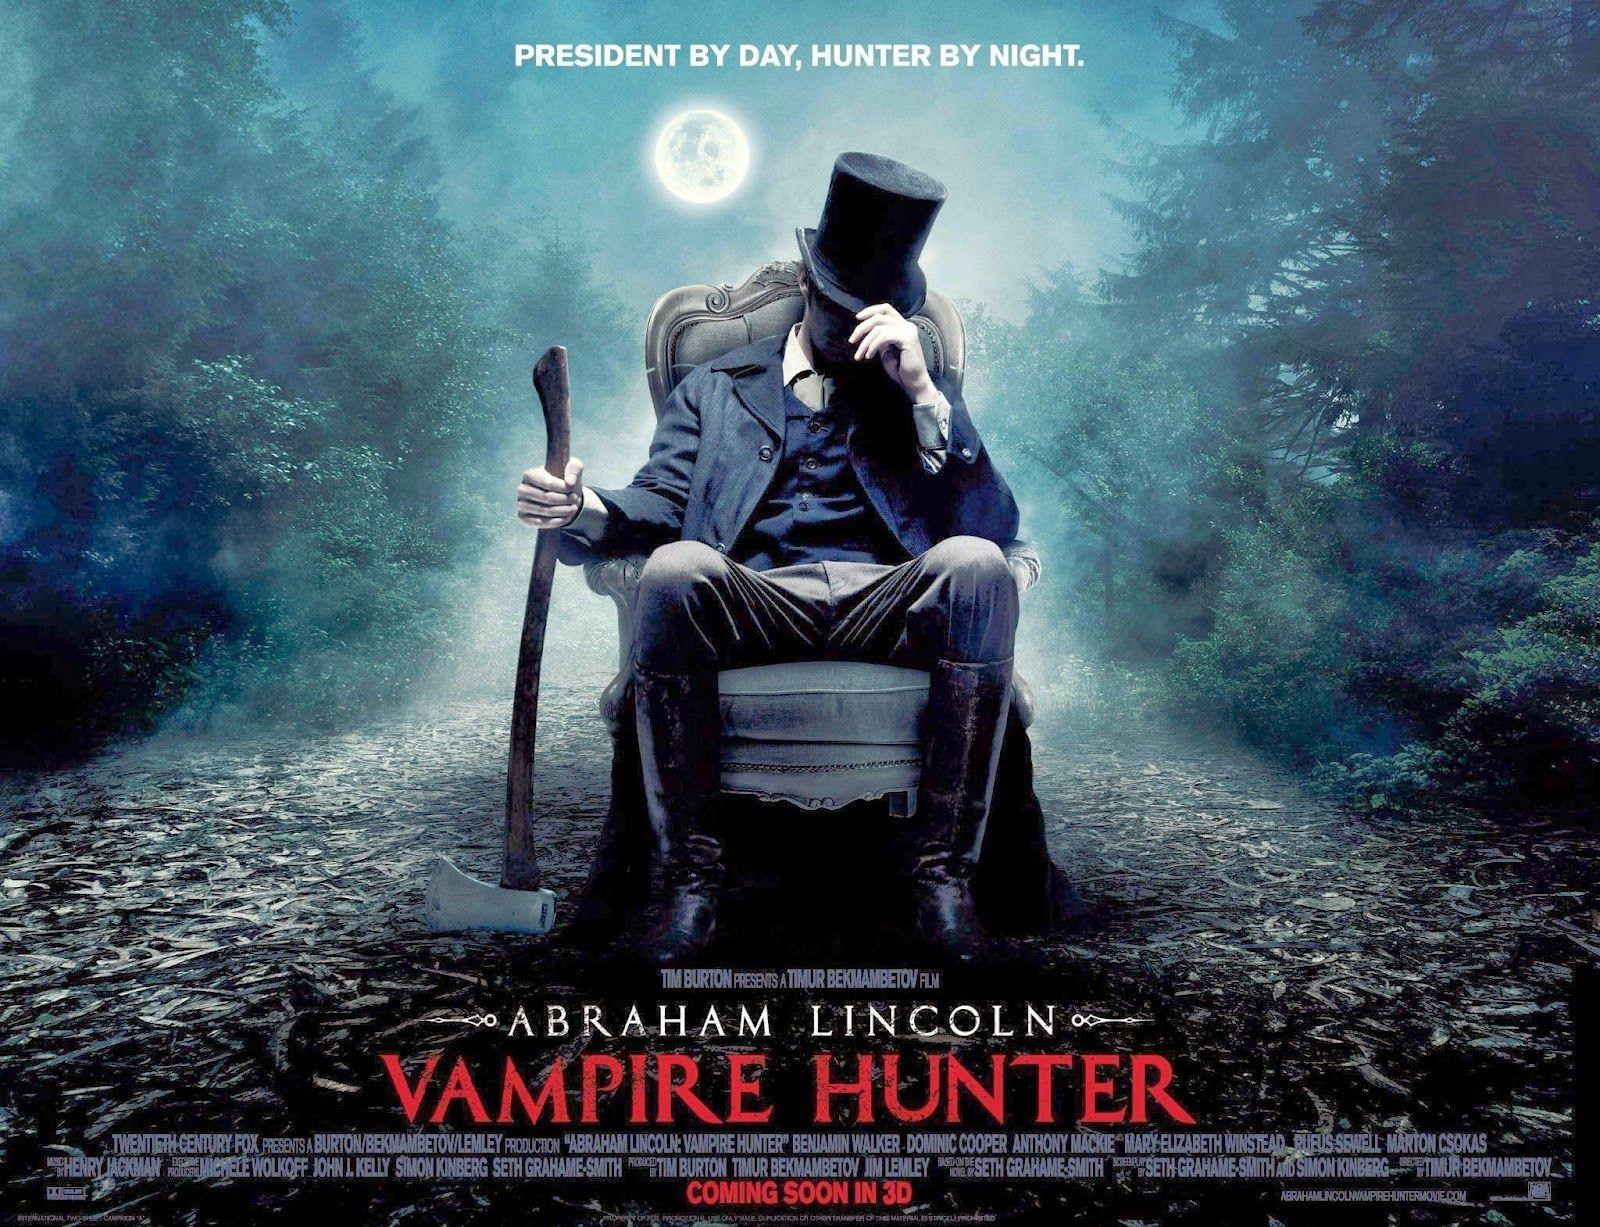 Abraham Lincoln Vampire Hunter Wallpapers | HD Wallpapers, HD ...